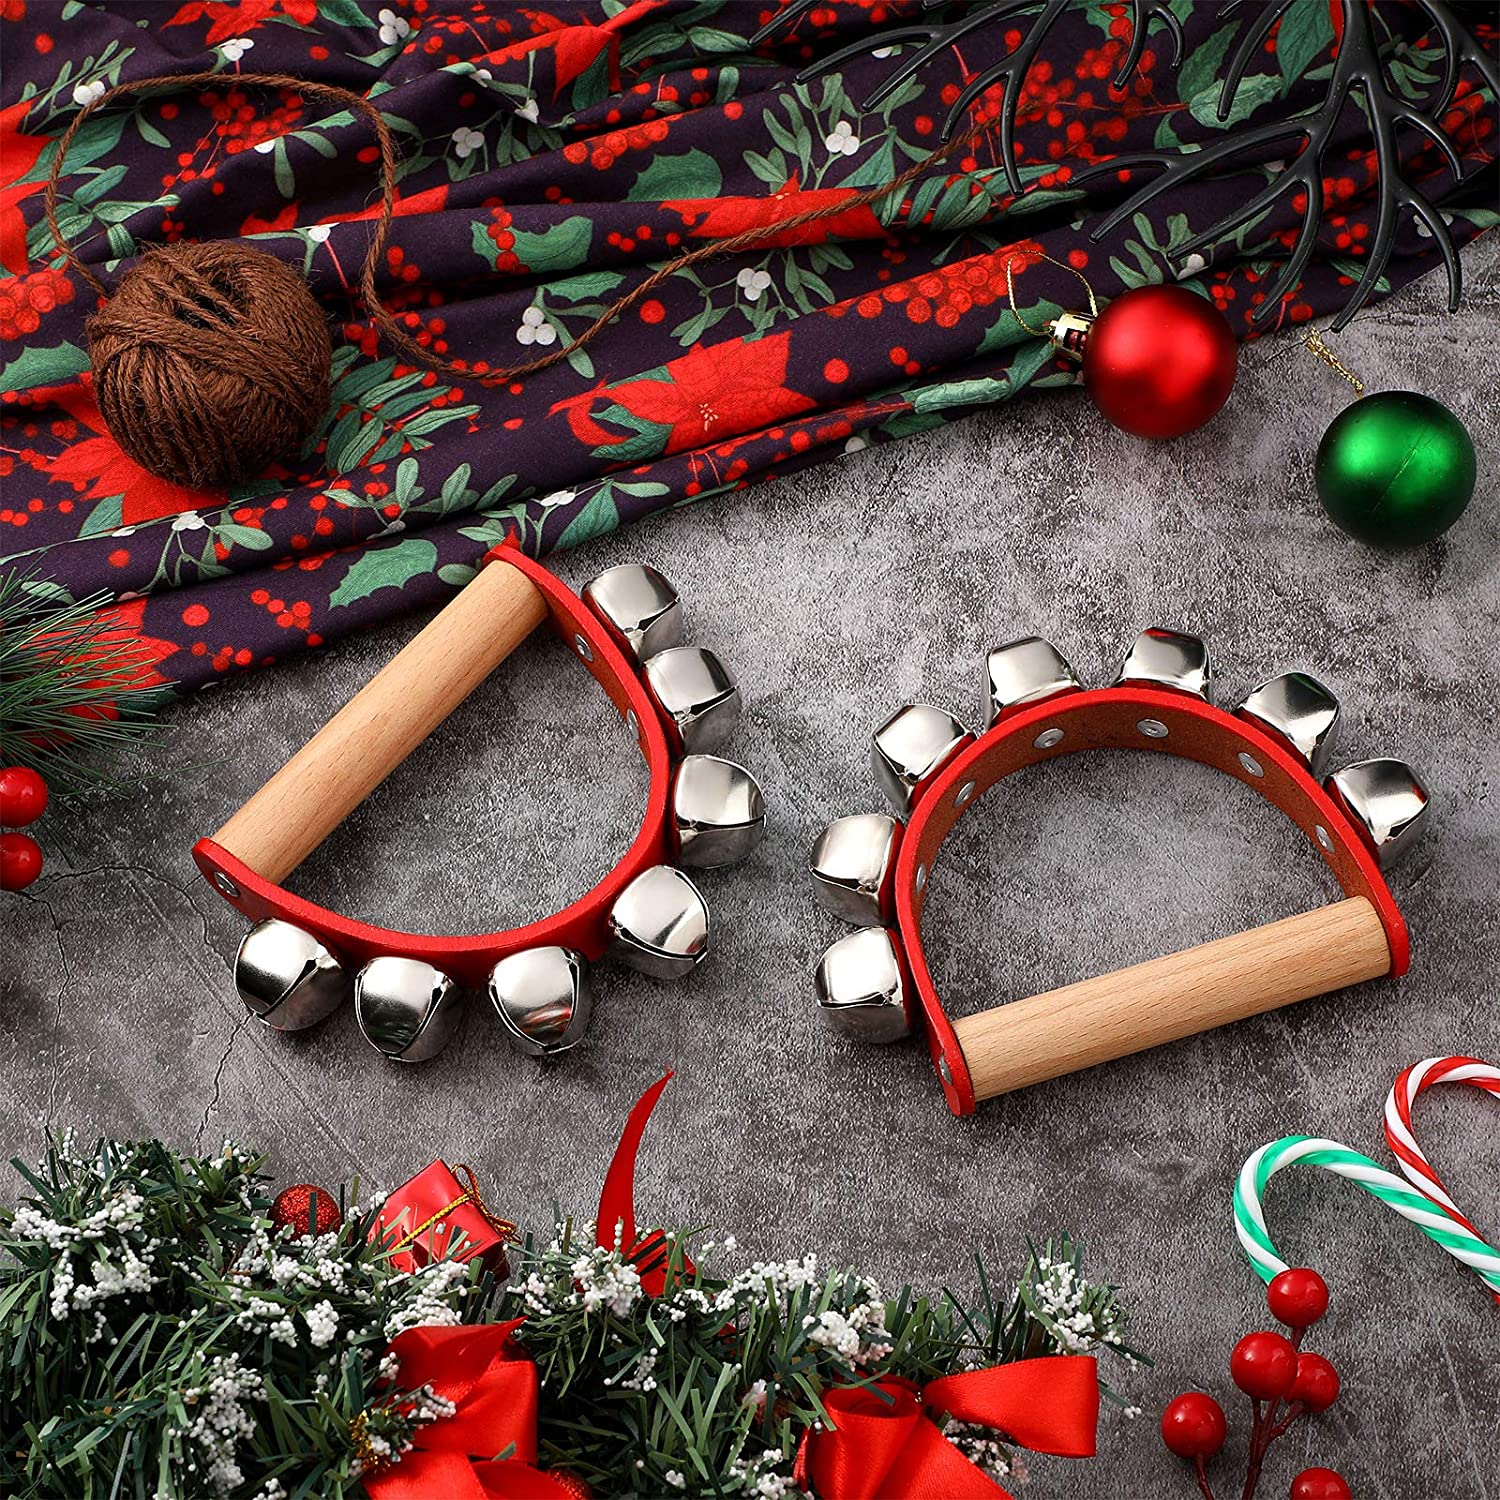 Wooden Handle Sleigh Ringbells Christmas Bells Musical Instrument for Holiday School Home Wedding Christmas New Year Decoration 18x5cm 3pcs MXJFYY Hand Jingle Bells